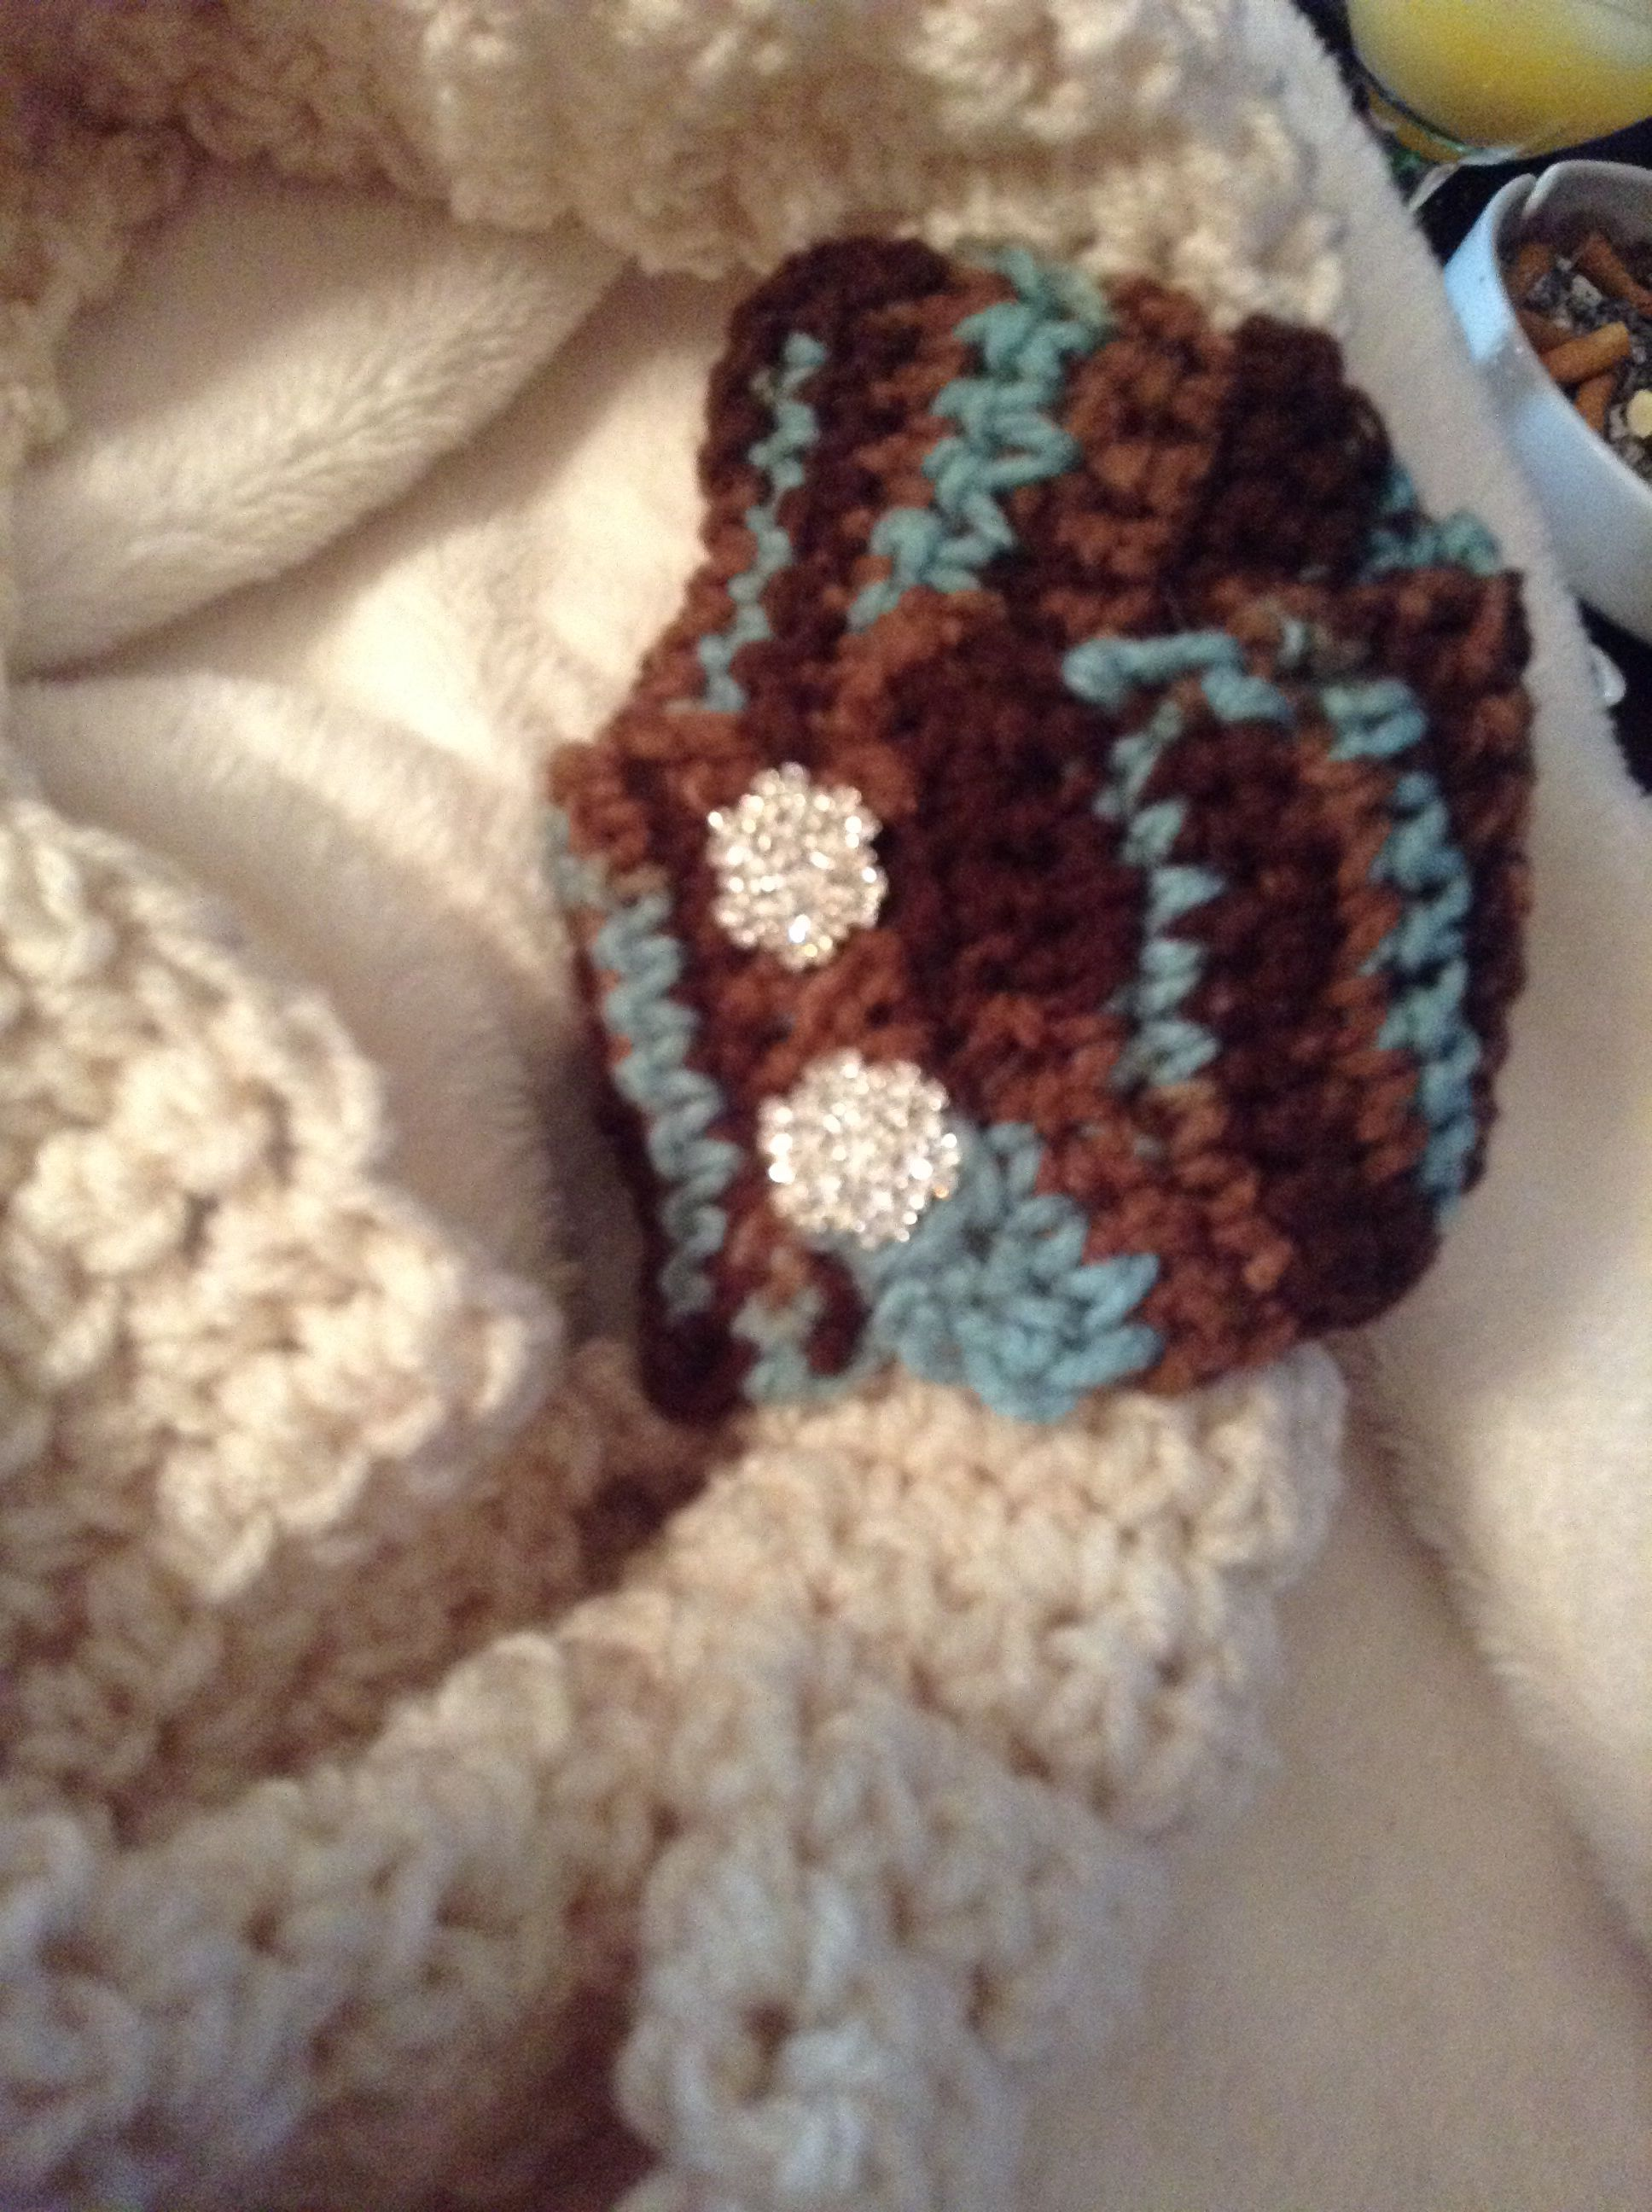 Bling bling buttons tie this blue and brown strap in to the cream infinity scarf! Jazz up an everyday scarf!